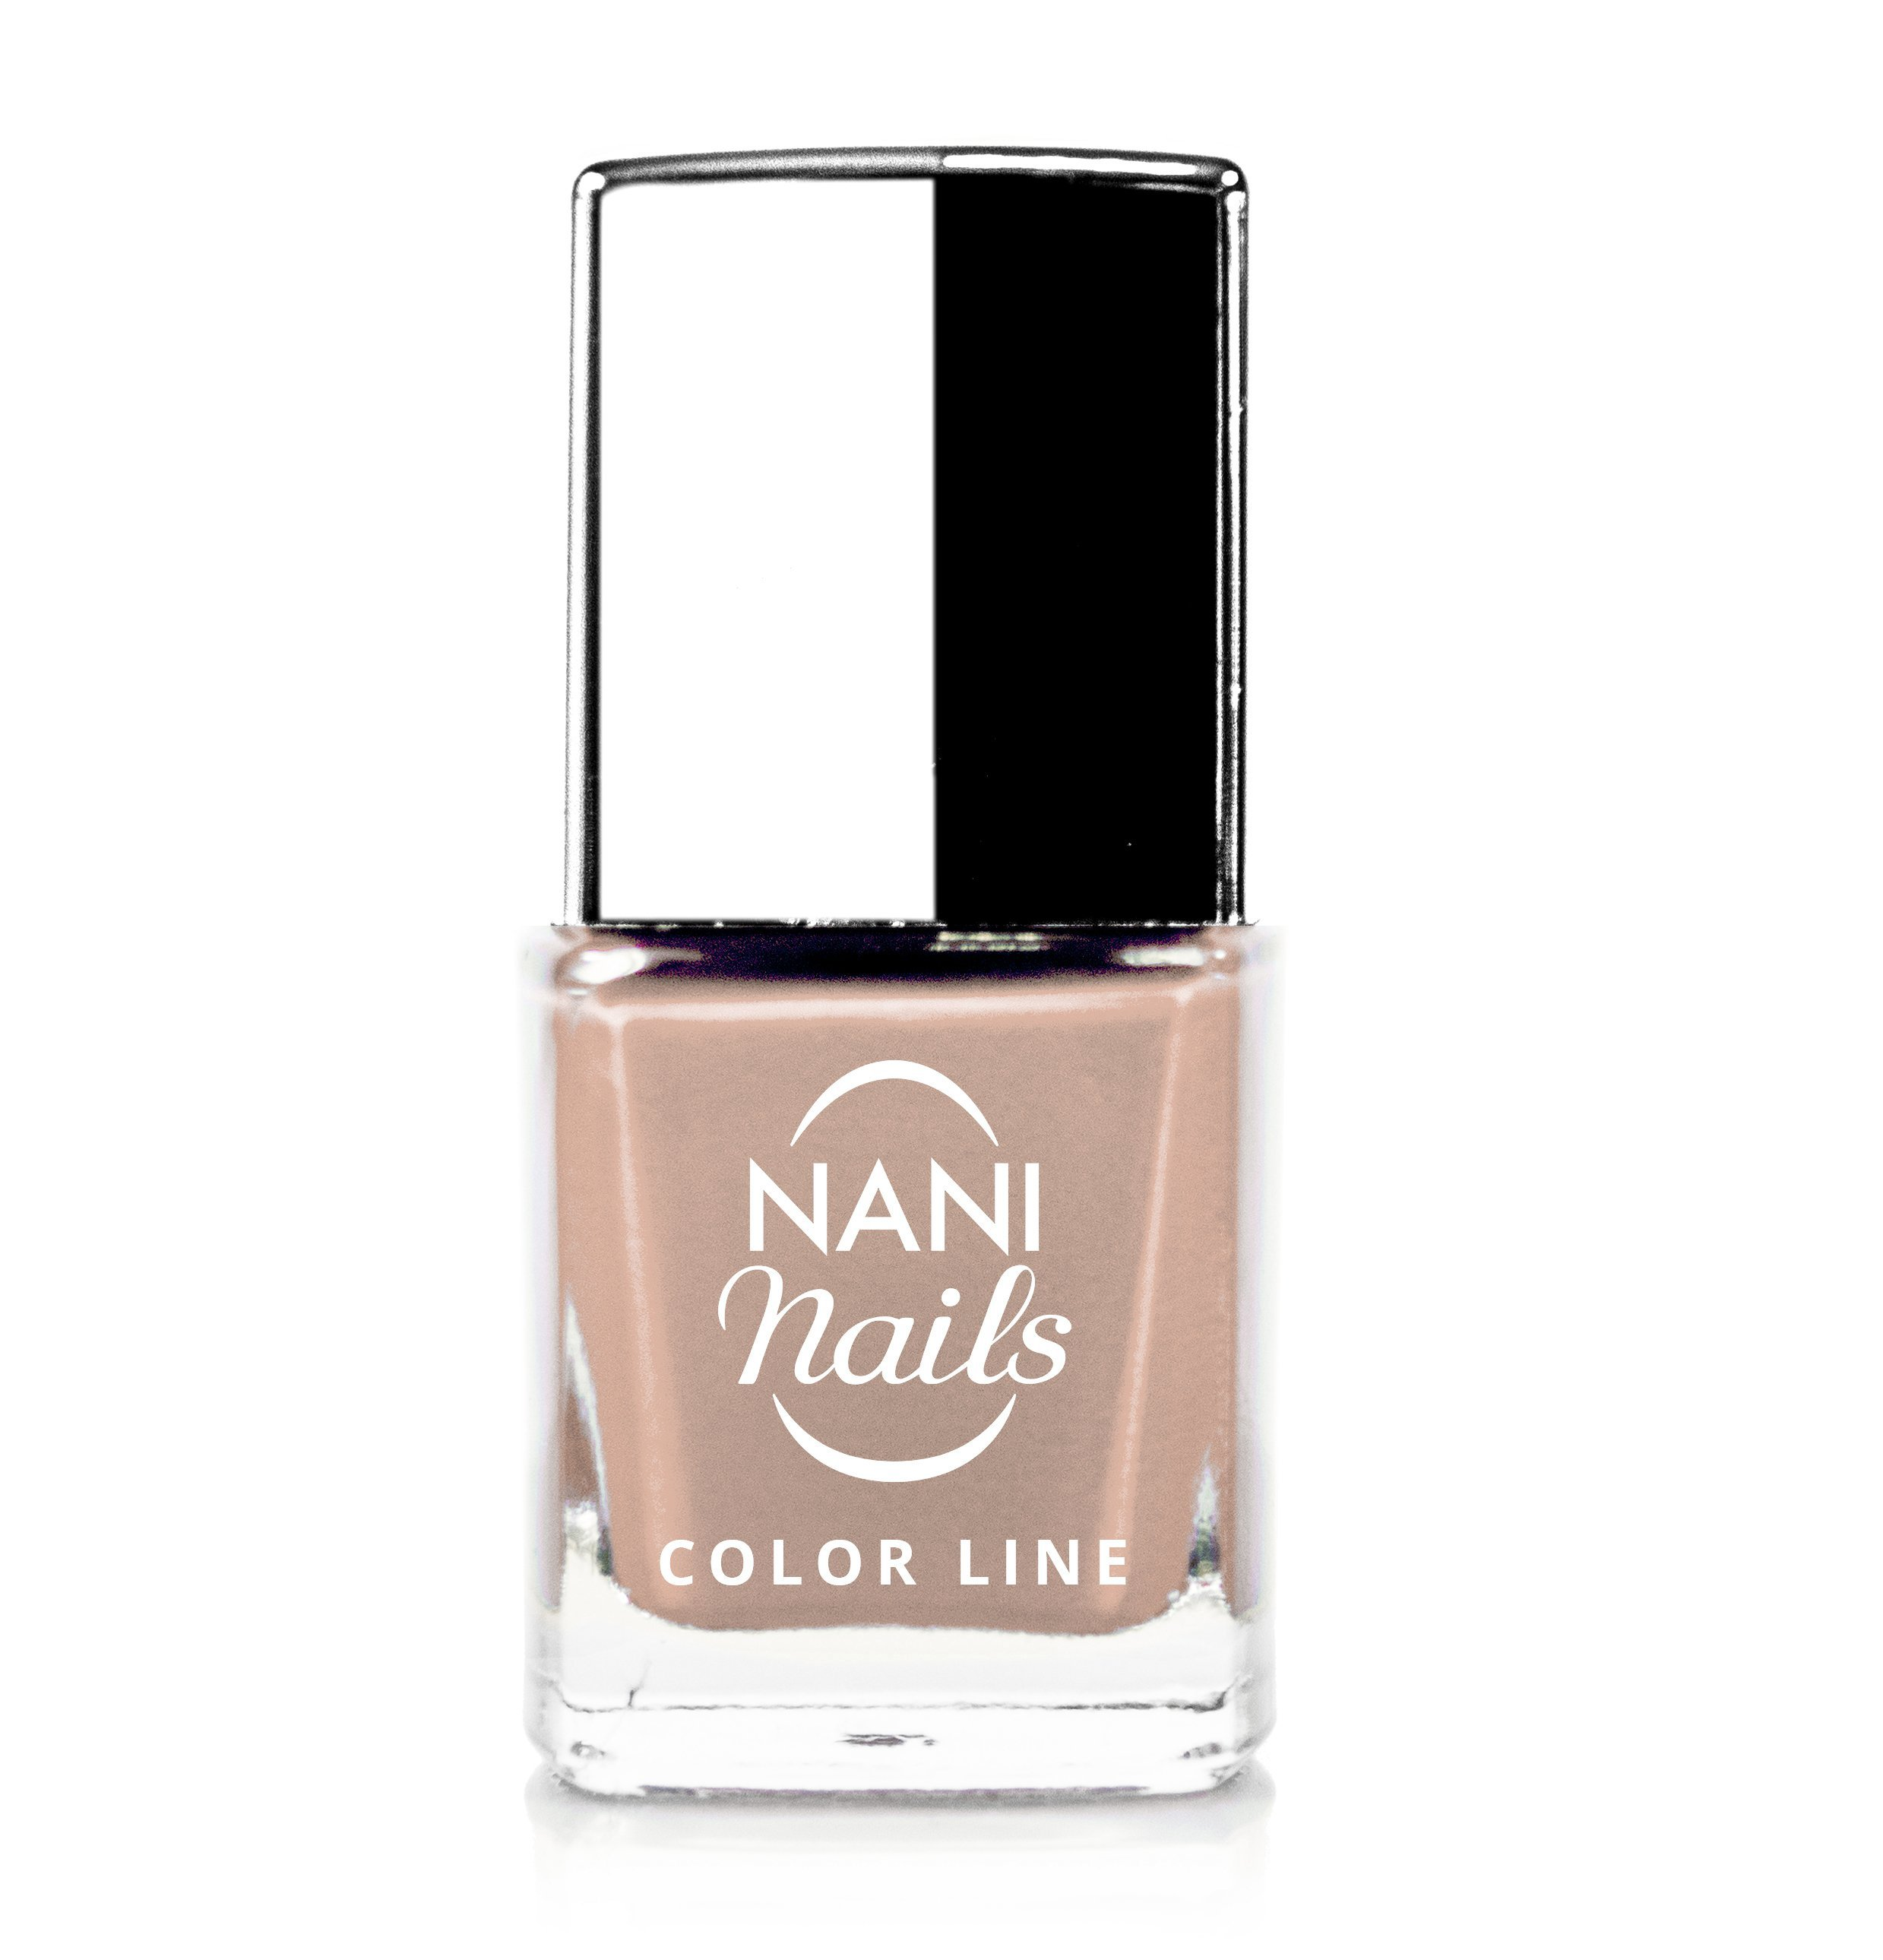 NANI lak Color Line 9 ml - 114